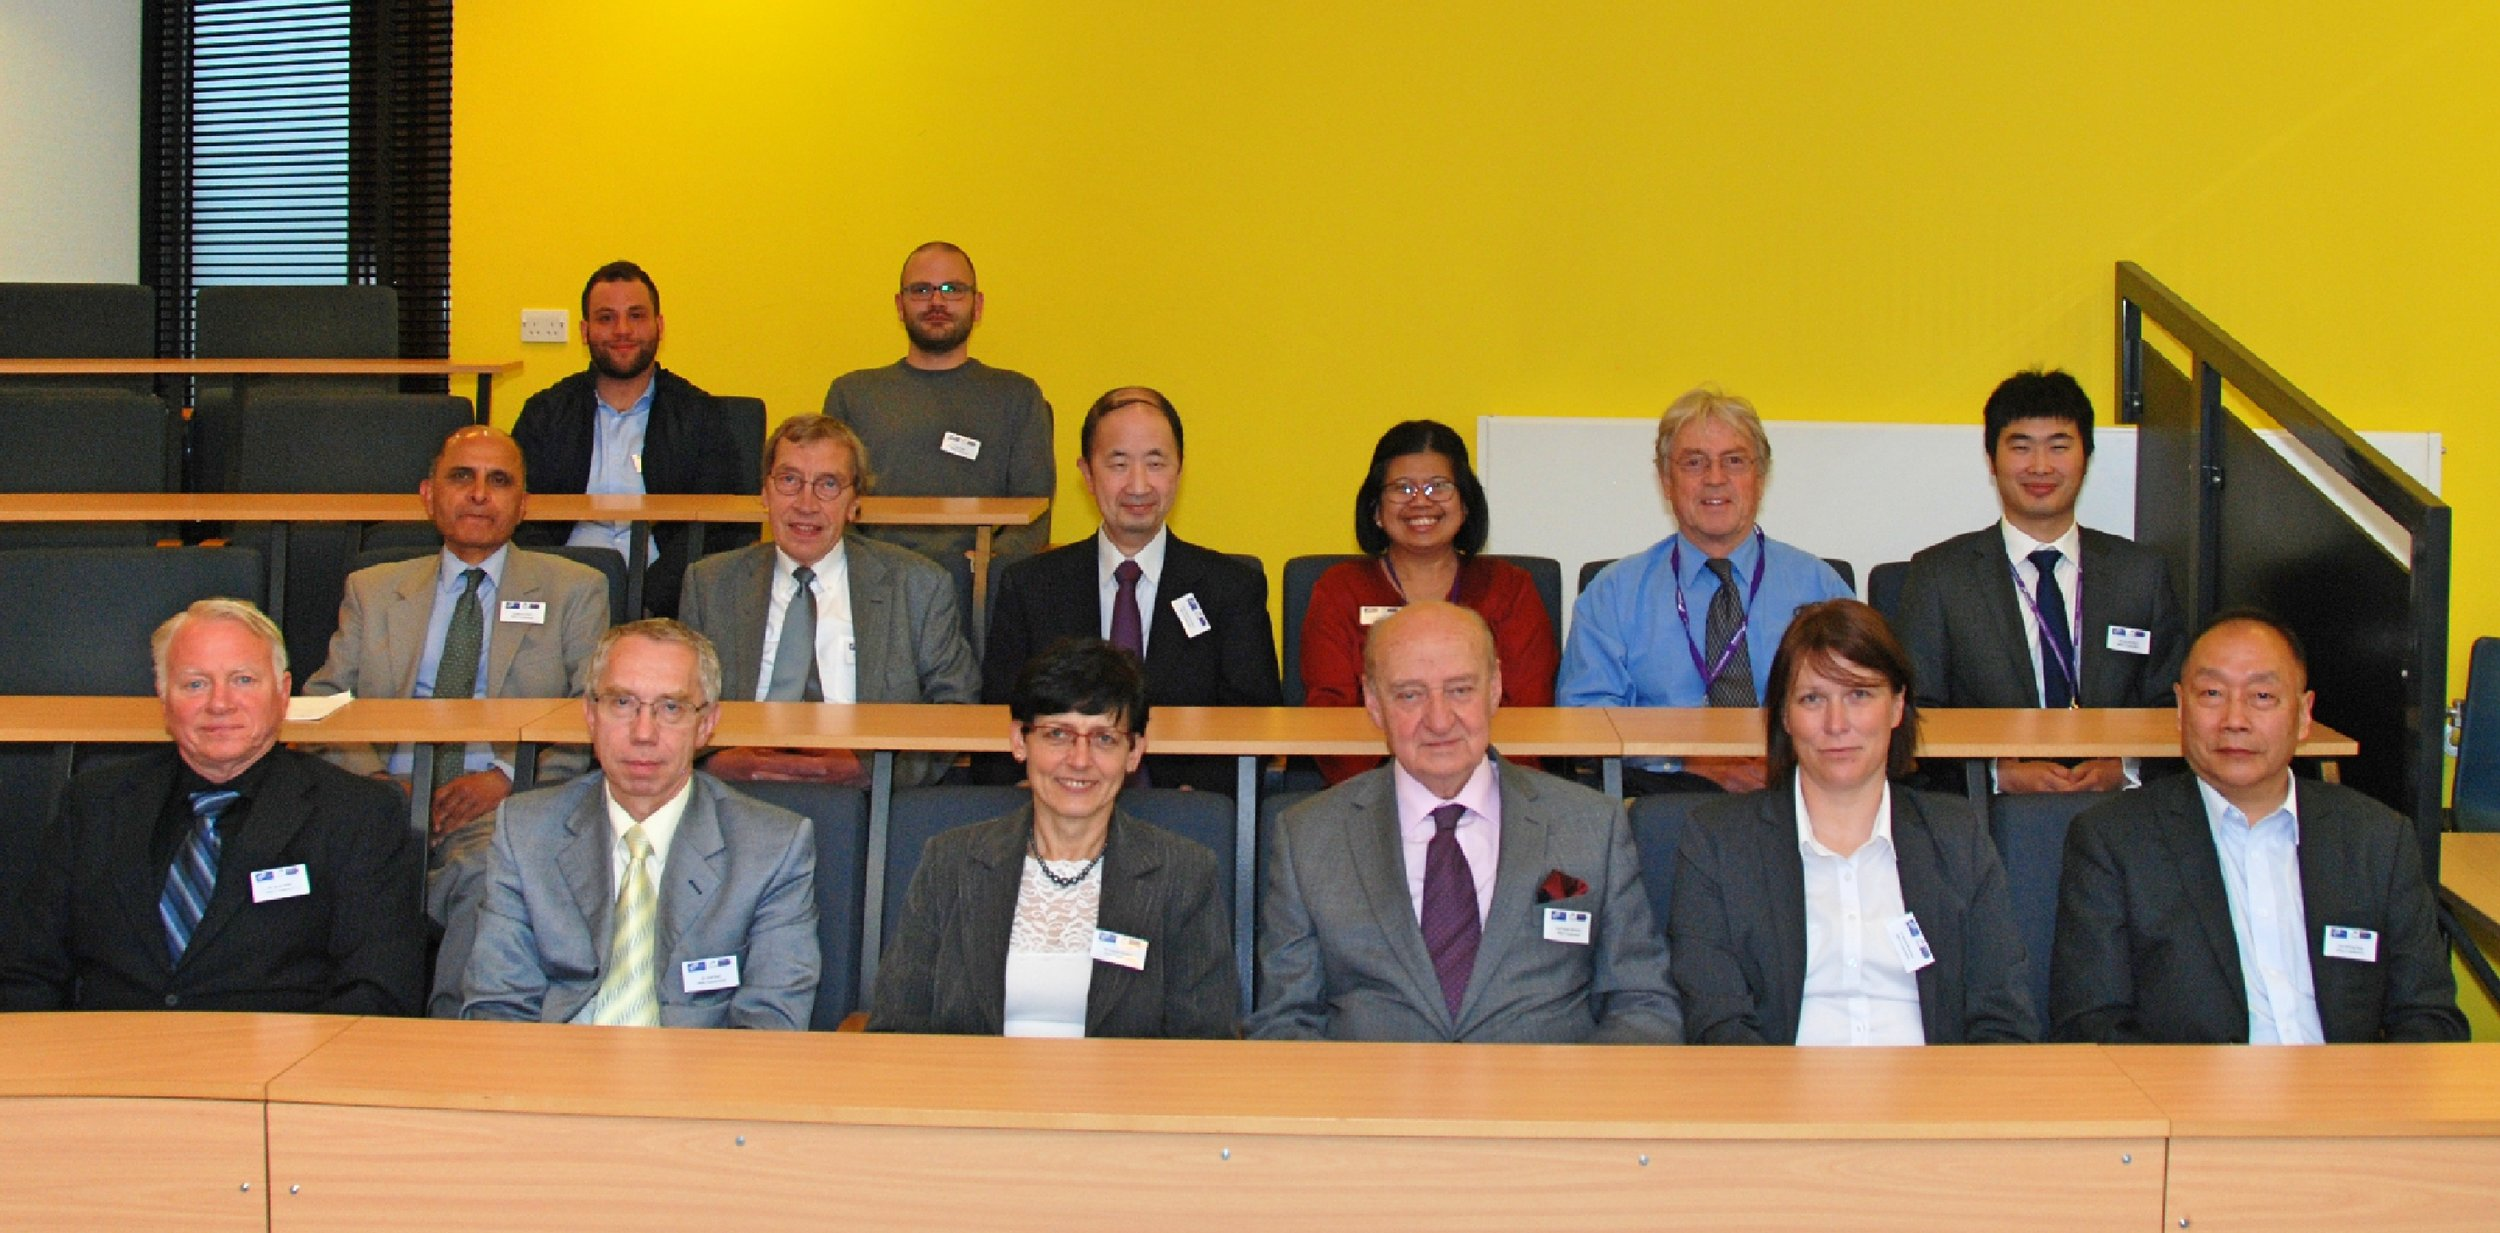 Some of the delegates at the Conference